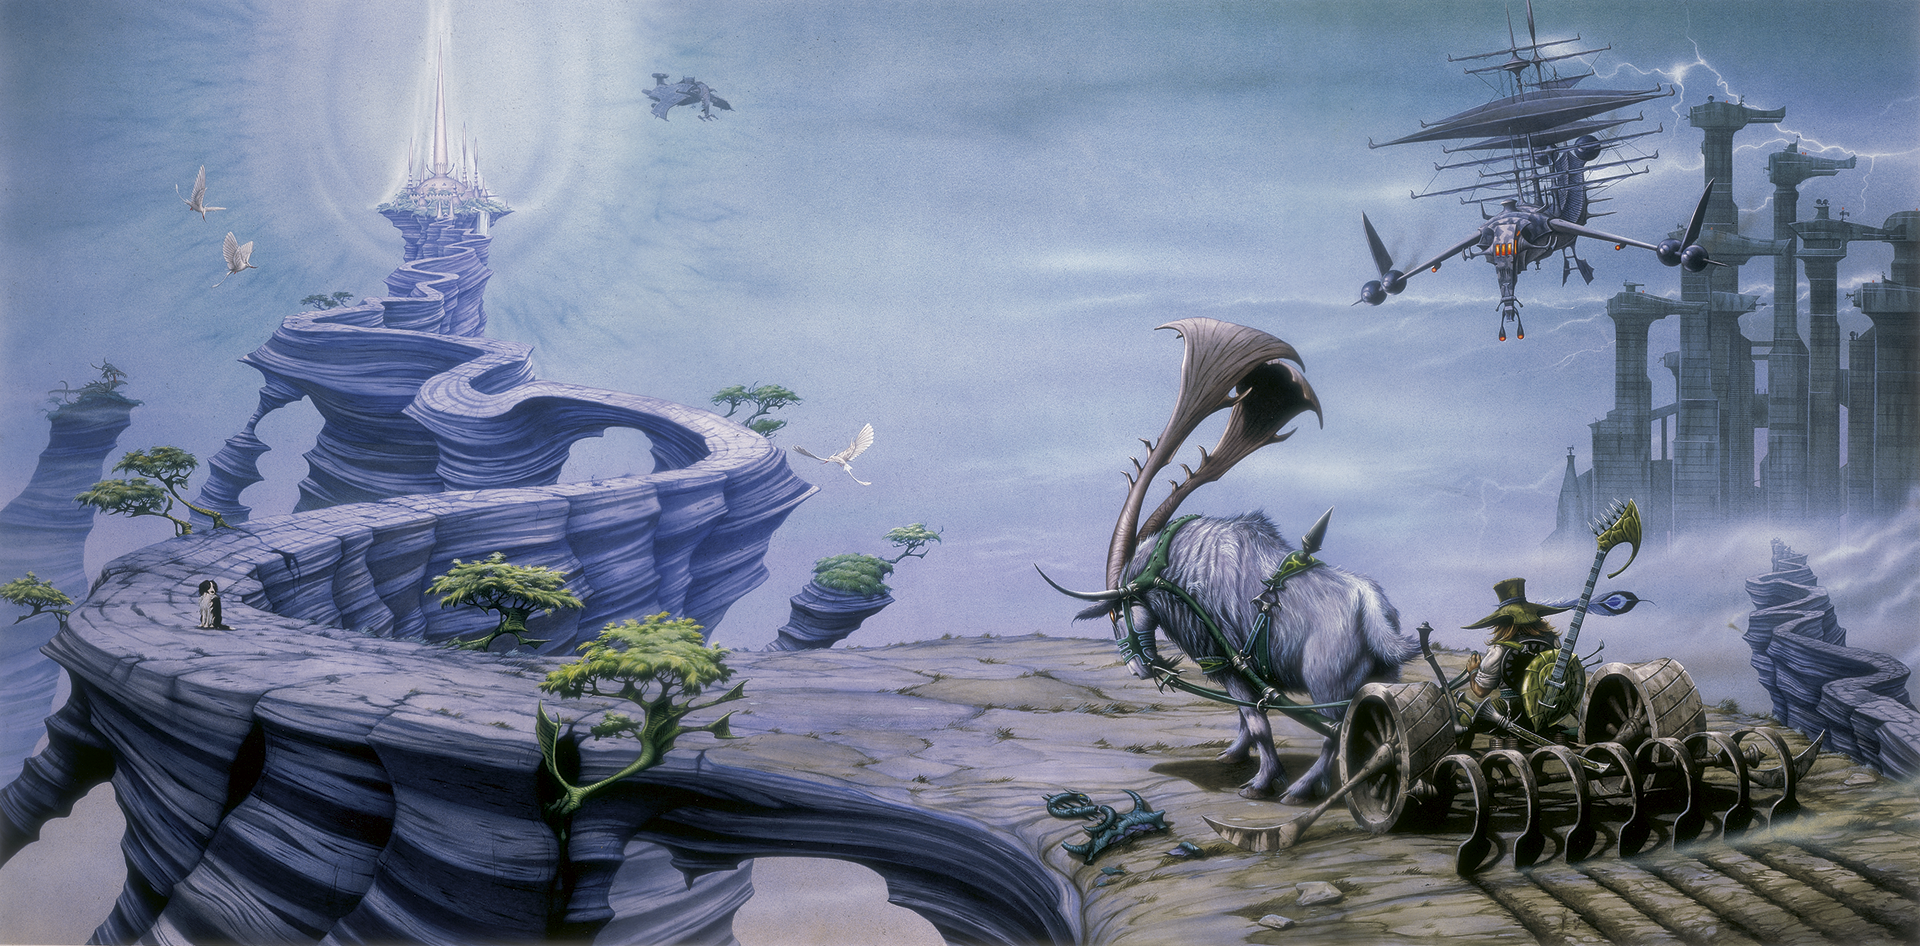 Foundation painting by Rodney Matthews